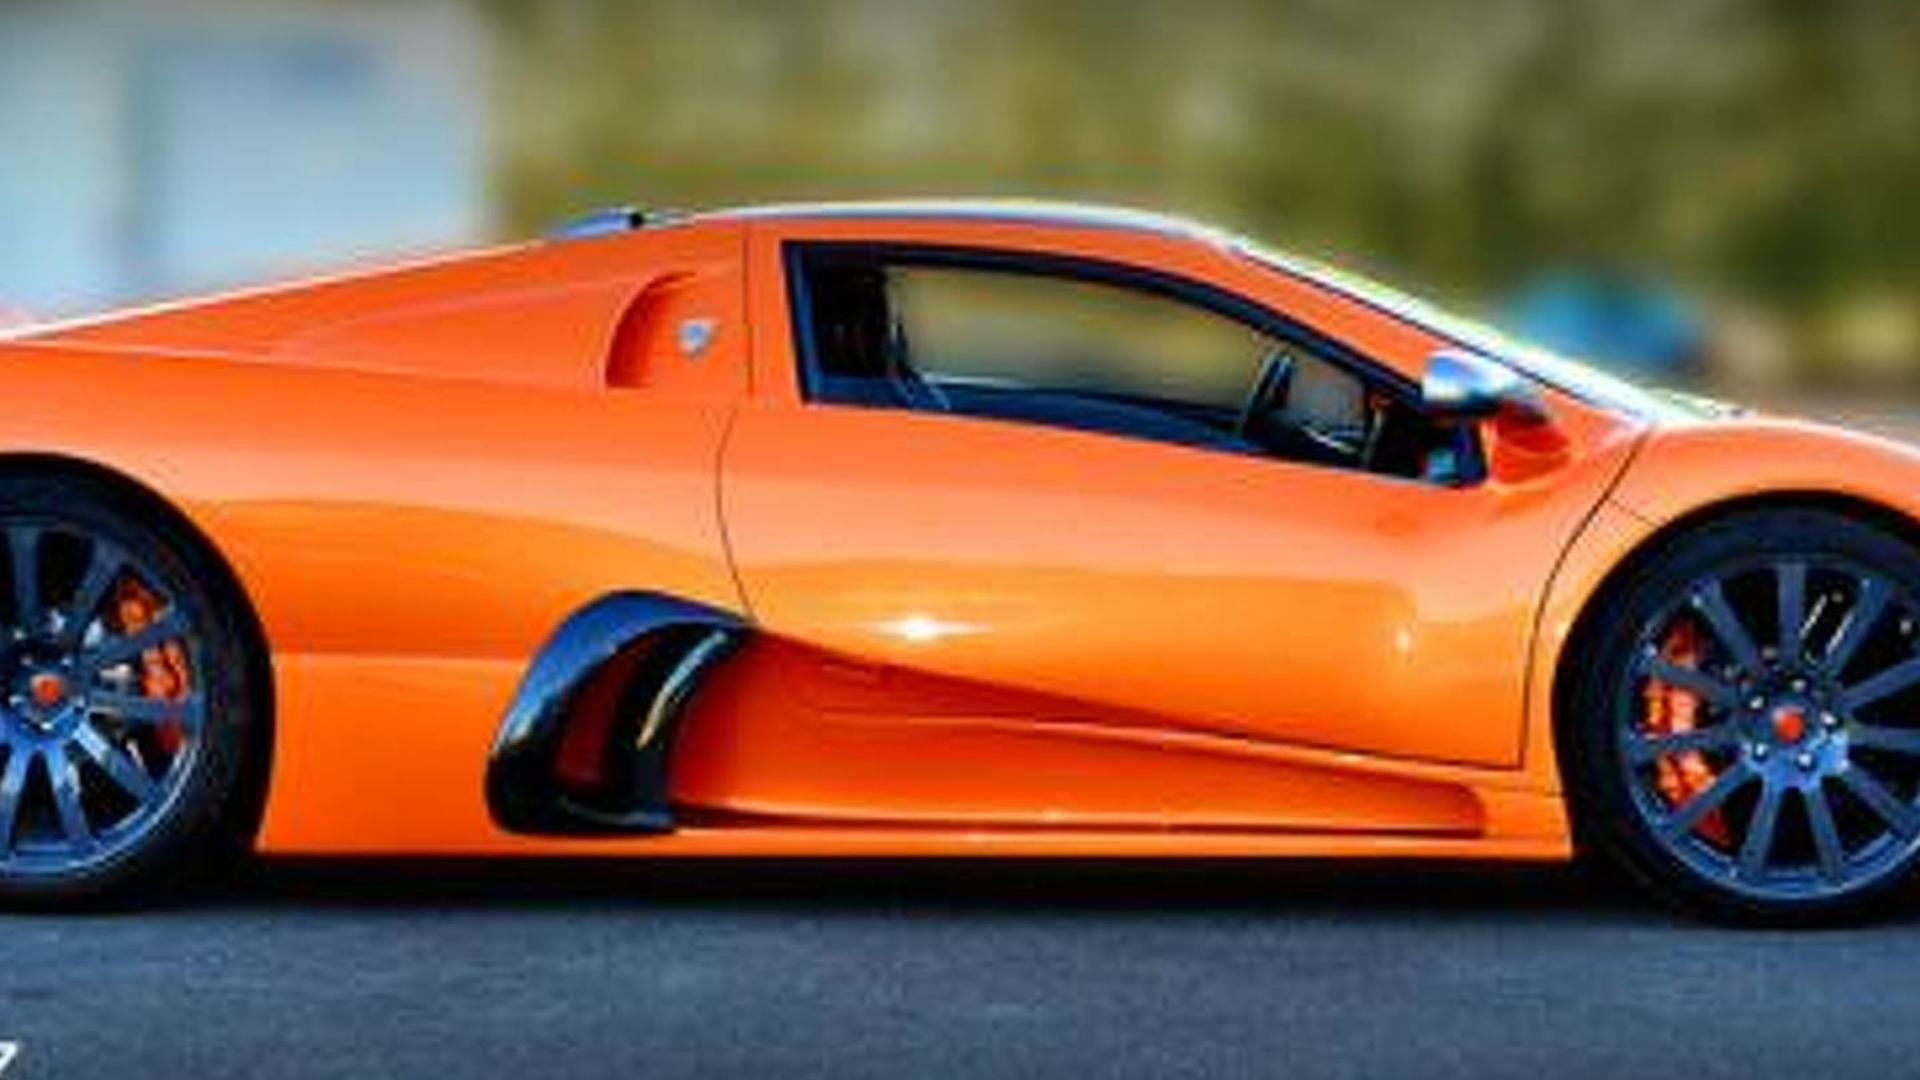 SSC Ultimate Aero reclaims fastest production car in the world le